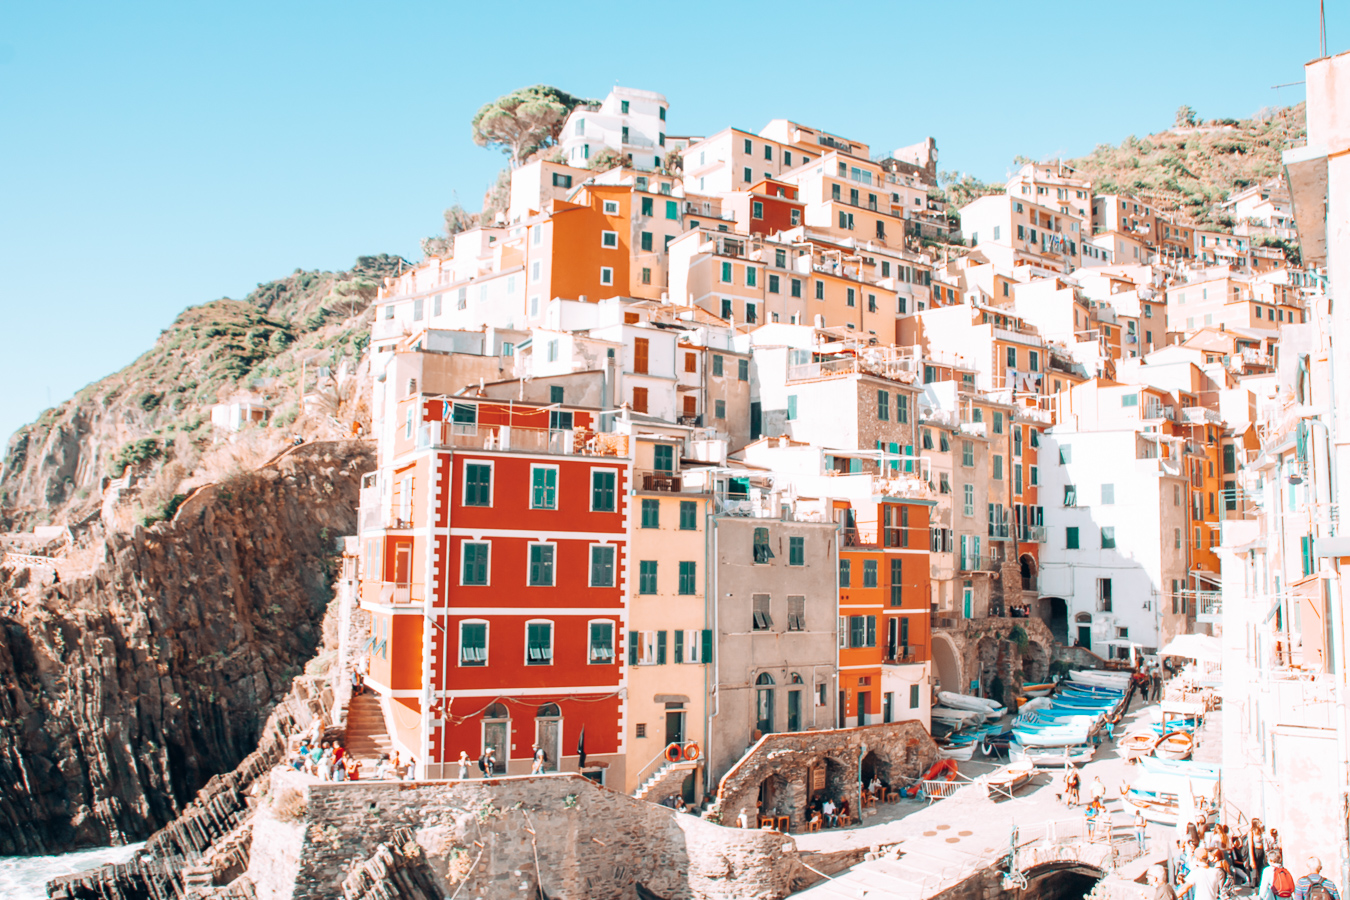 Colorful houses in Riomaggiore